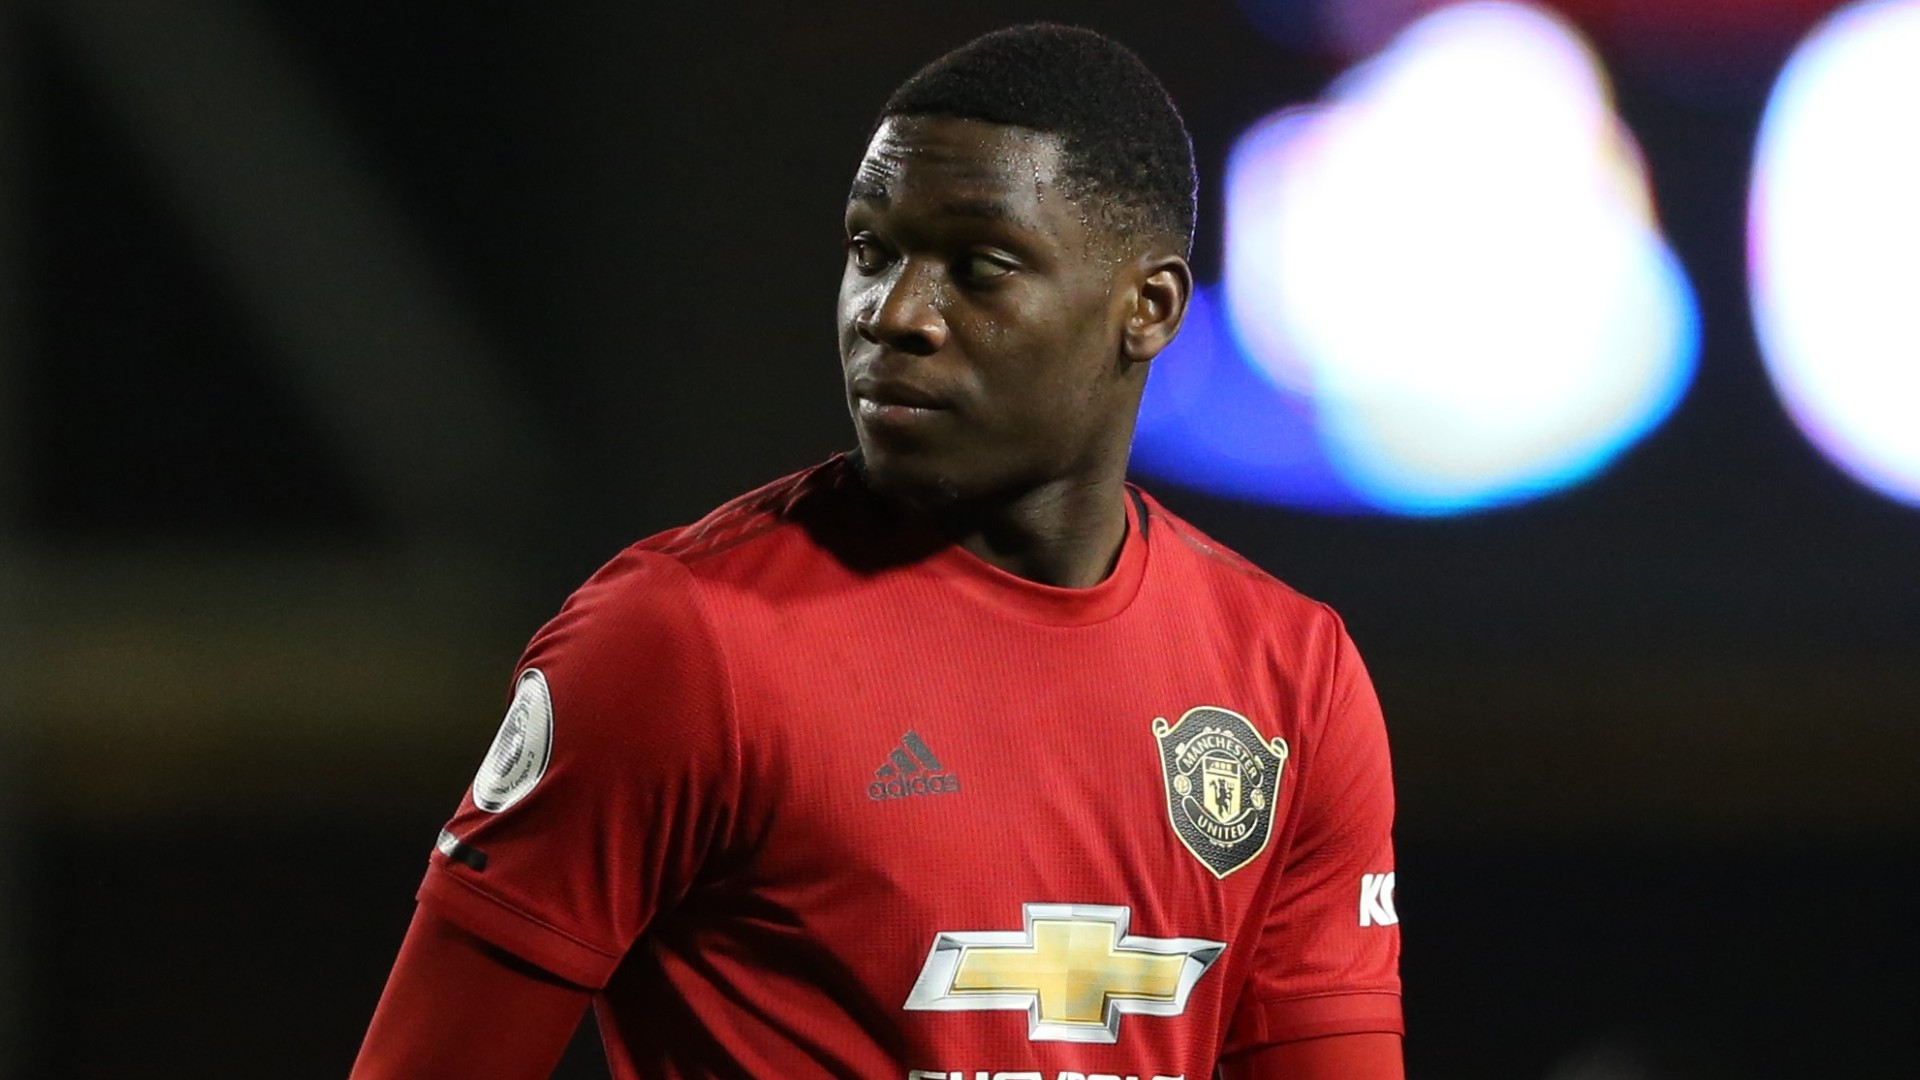 Manchester United's Mengi joins Rooney's Derby County on loan